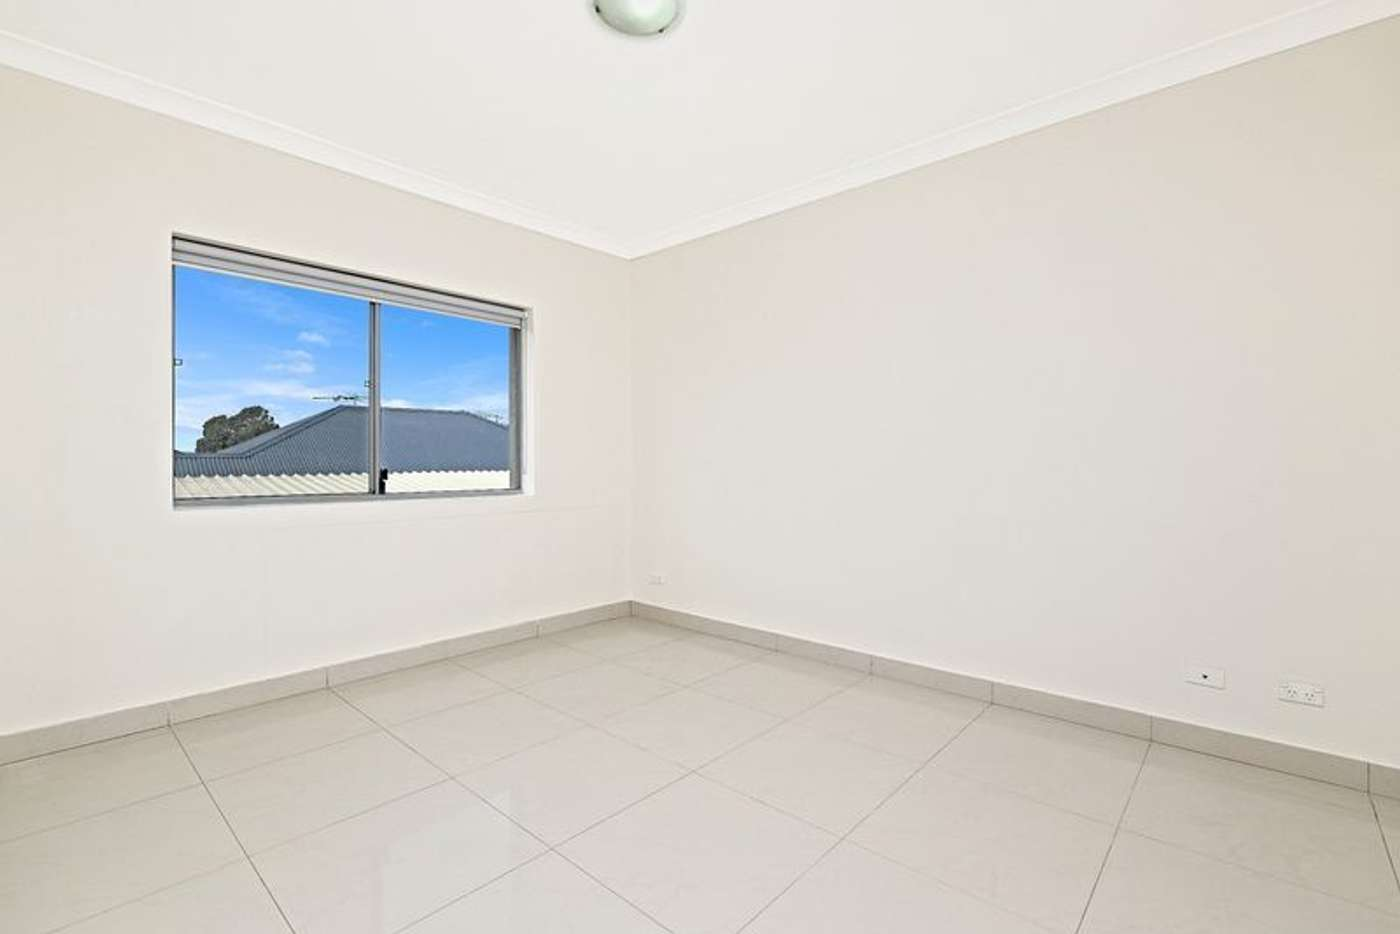 Sixth view of Homely apartment listing, 15/139-143 Waterloo Road, Greenacre NSW 2190